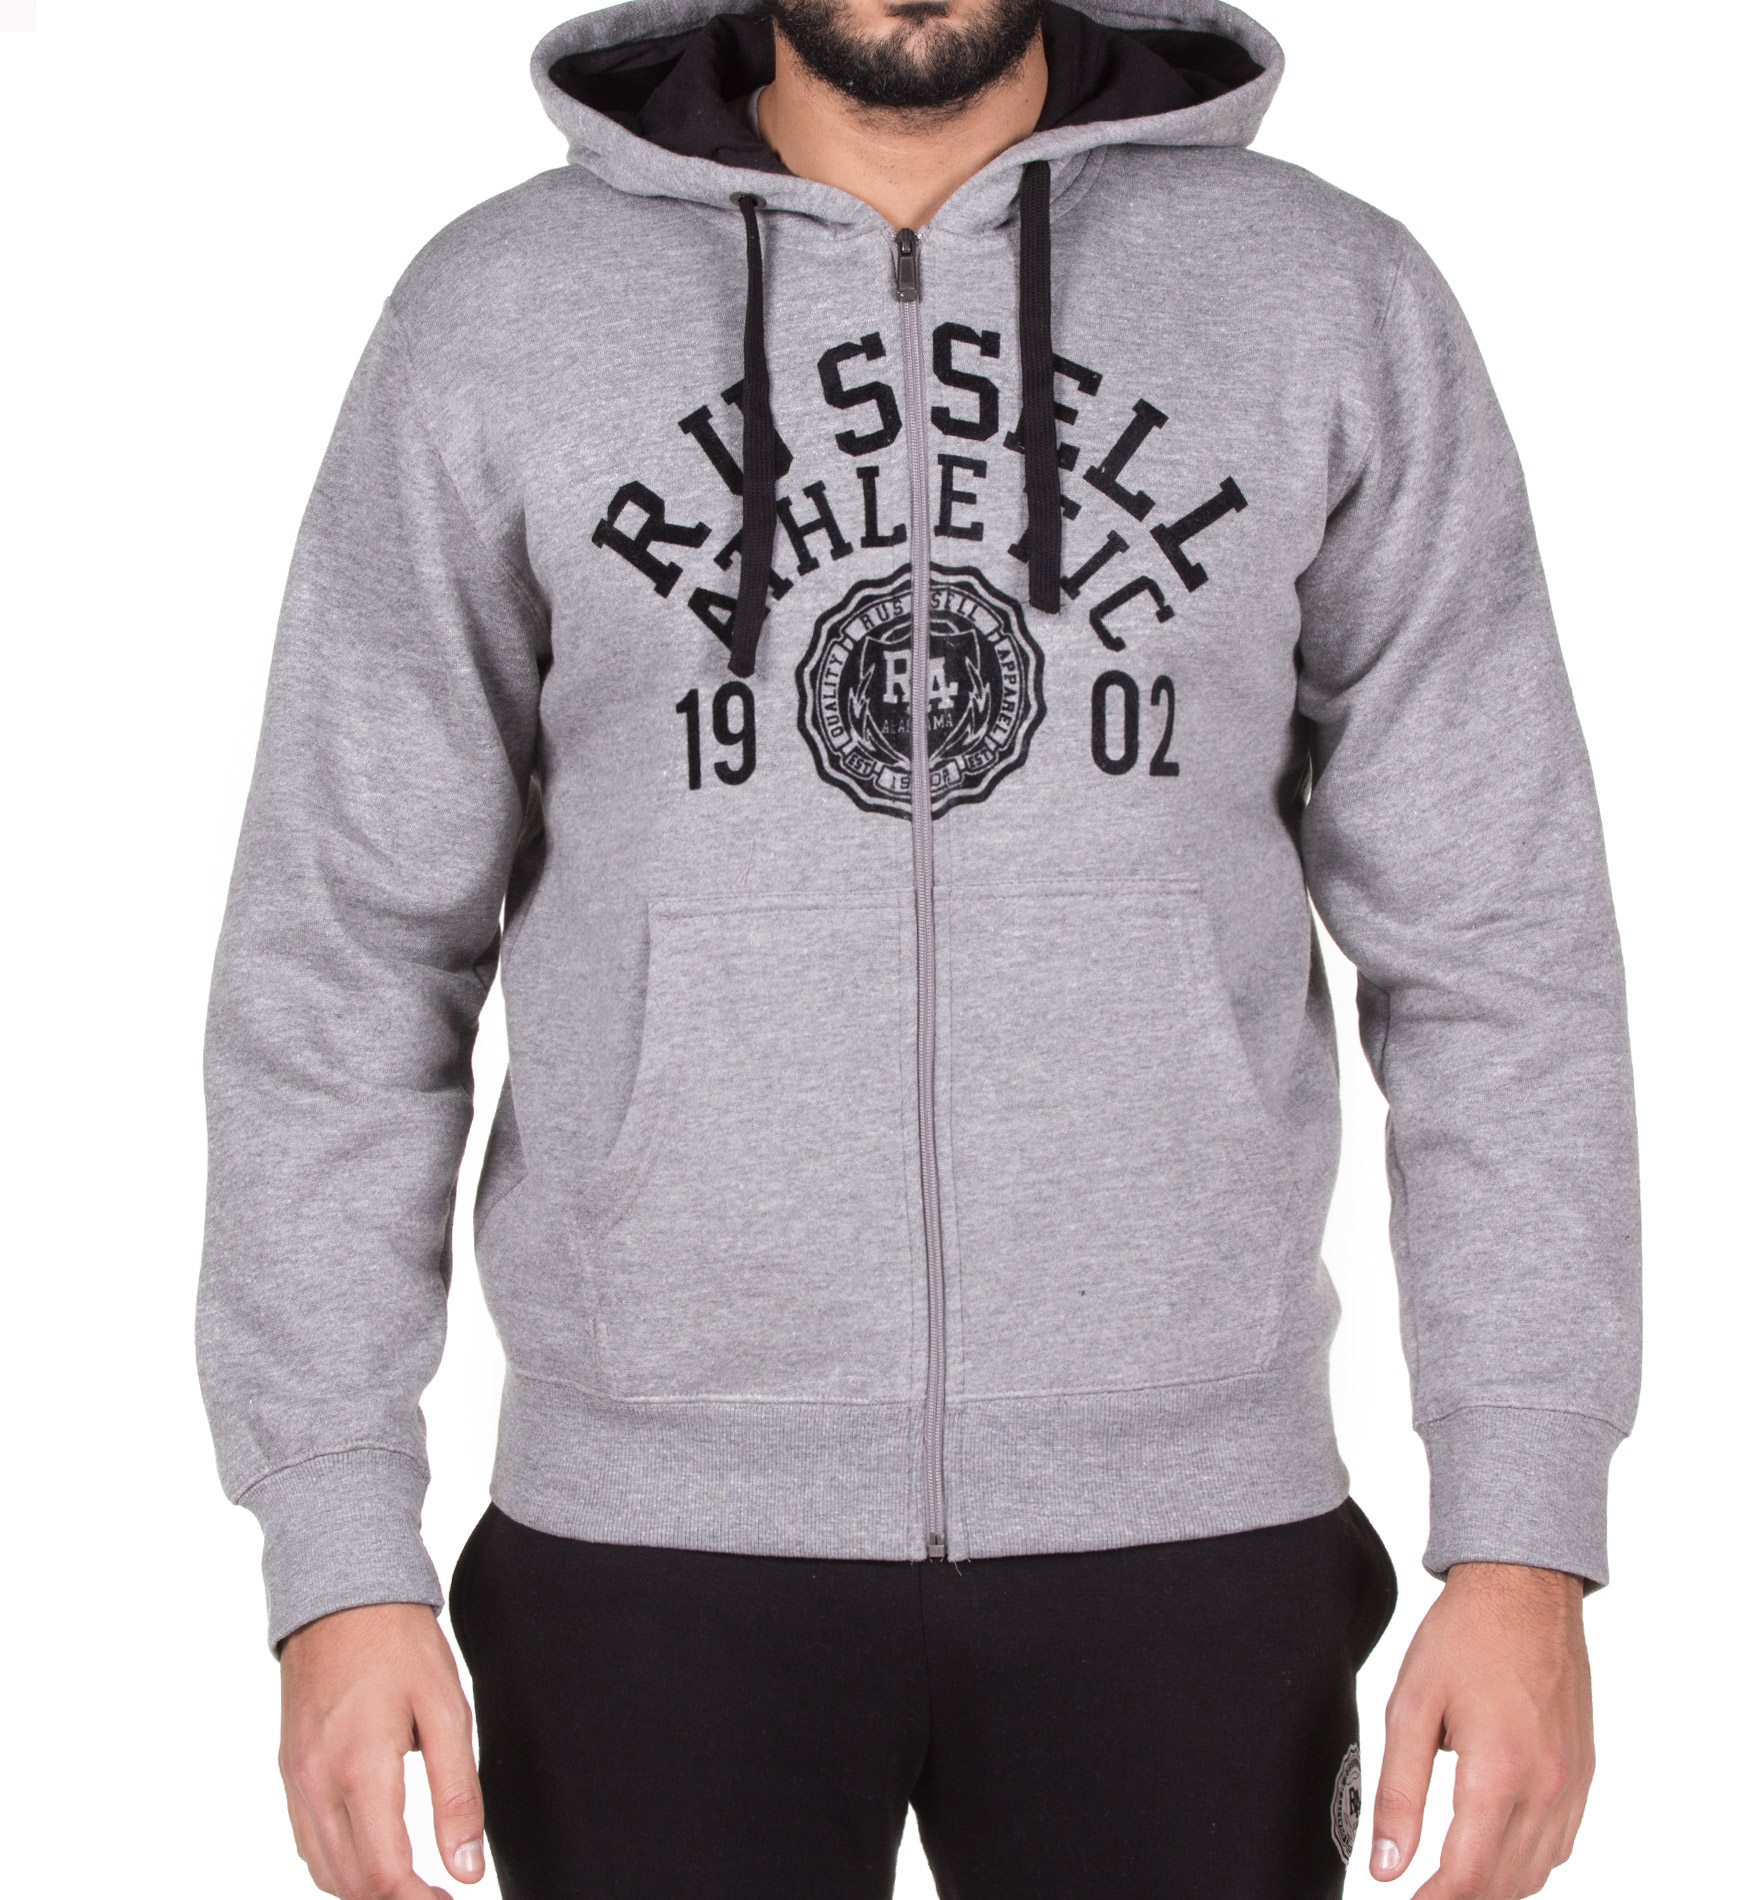 RUSSELL ATHLETIC ZIP THROUGH HOODY WITH ROSETTE FLOCK PRINT A7-703-2-090 Γκρί